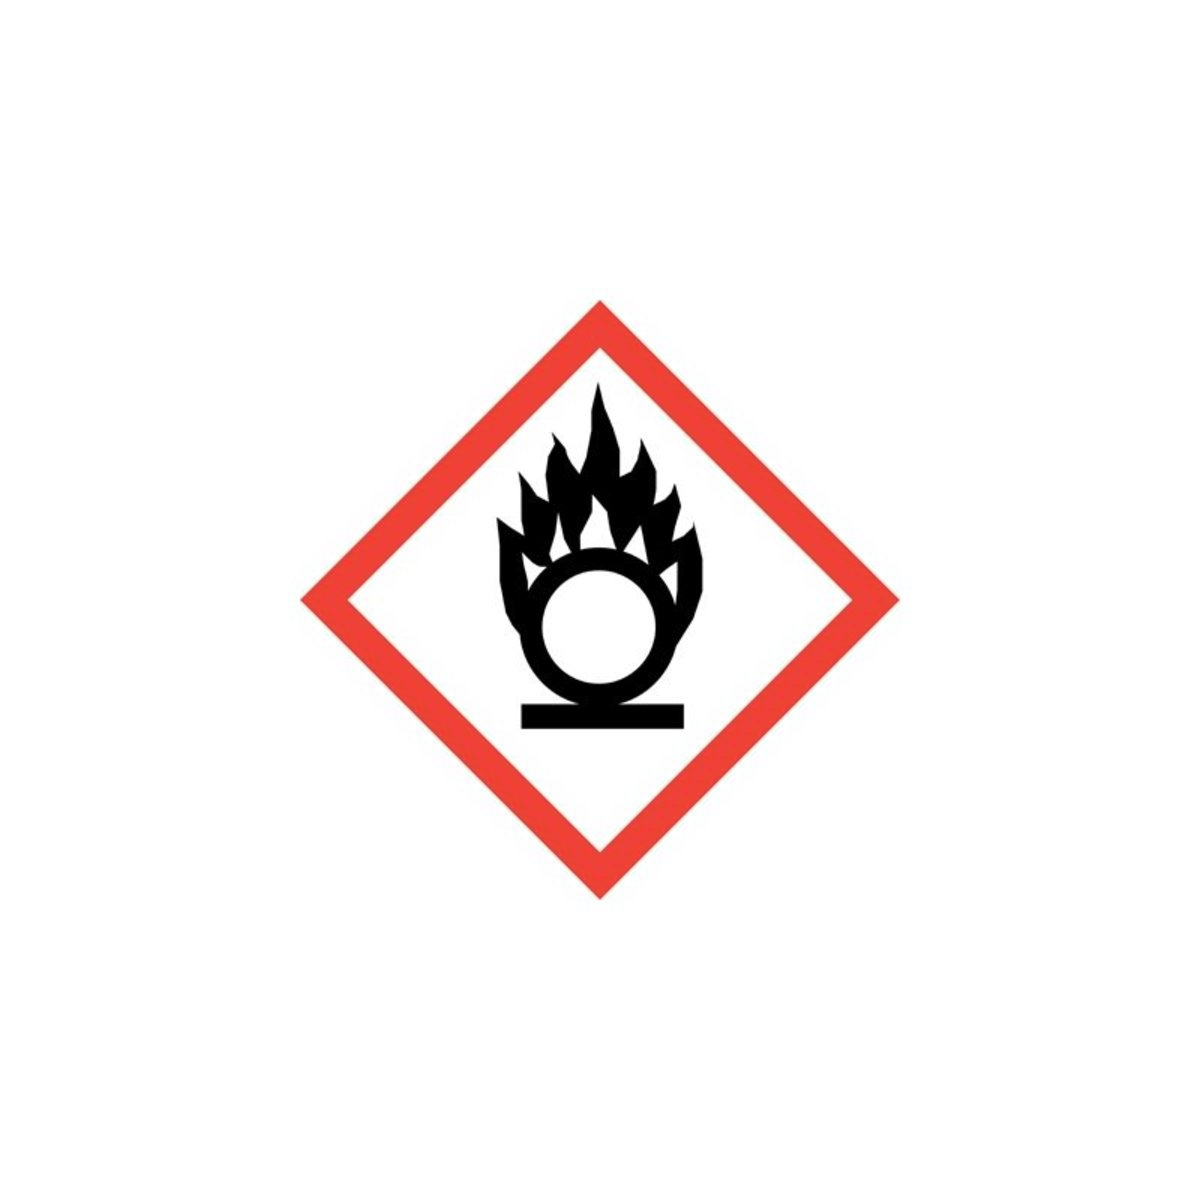 Flame over circle ghs pictogram